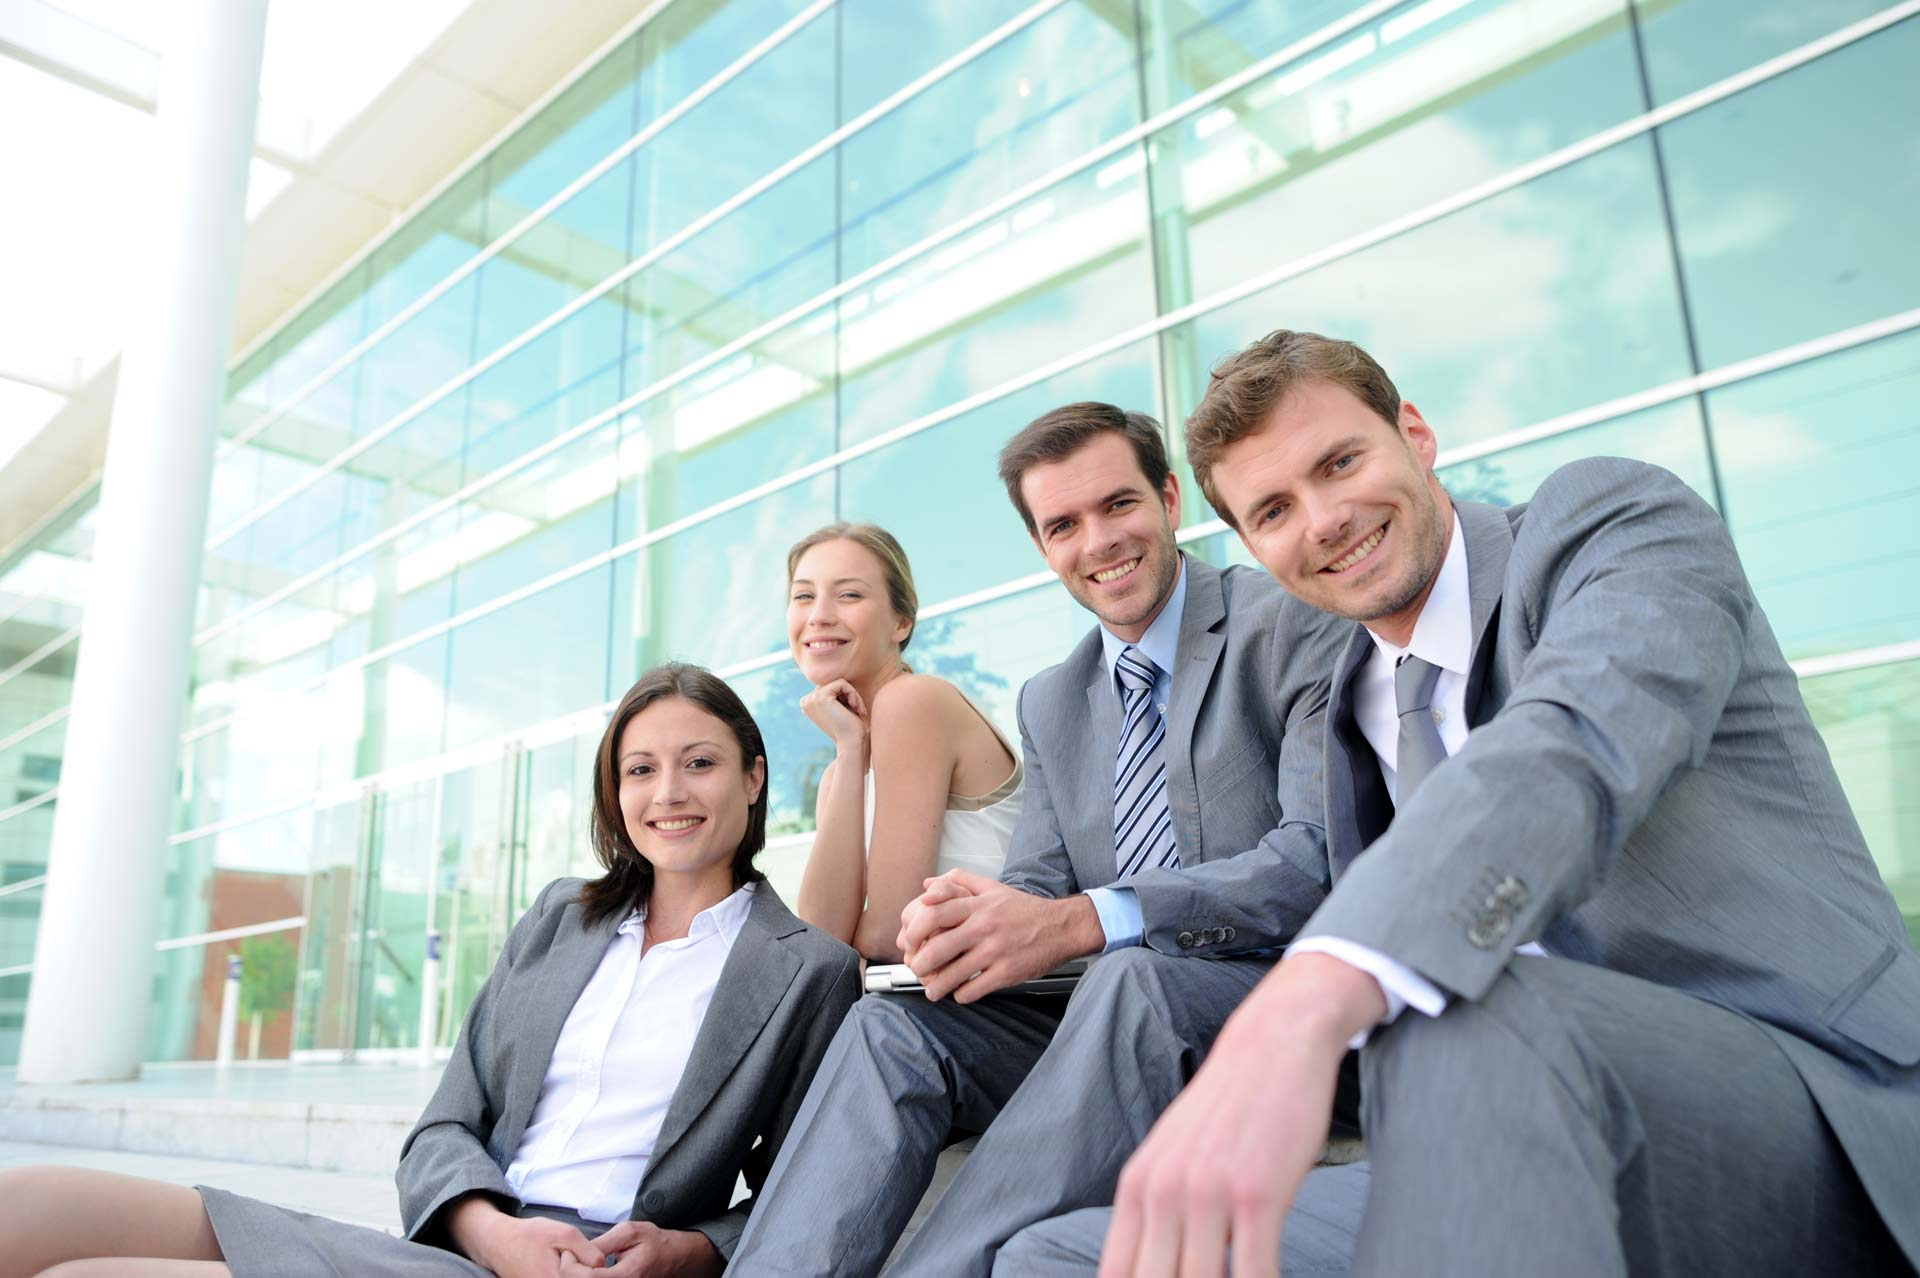 4 business professionals sitting outside during the day smiling at the camera